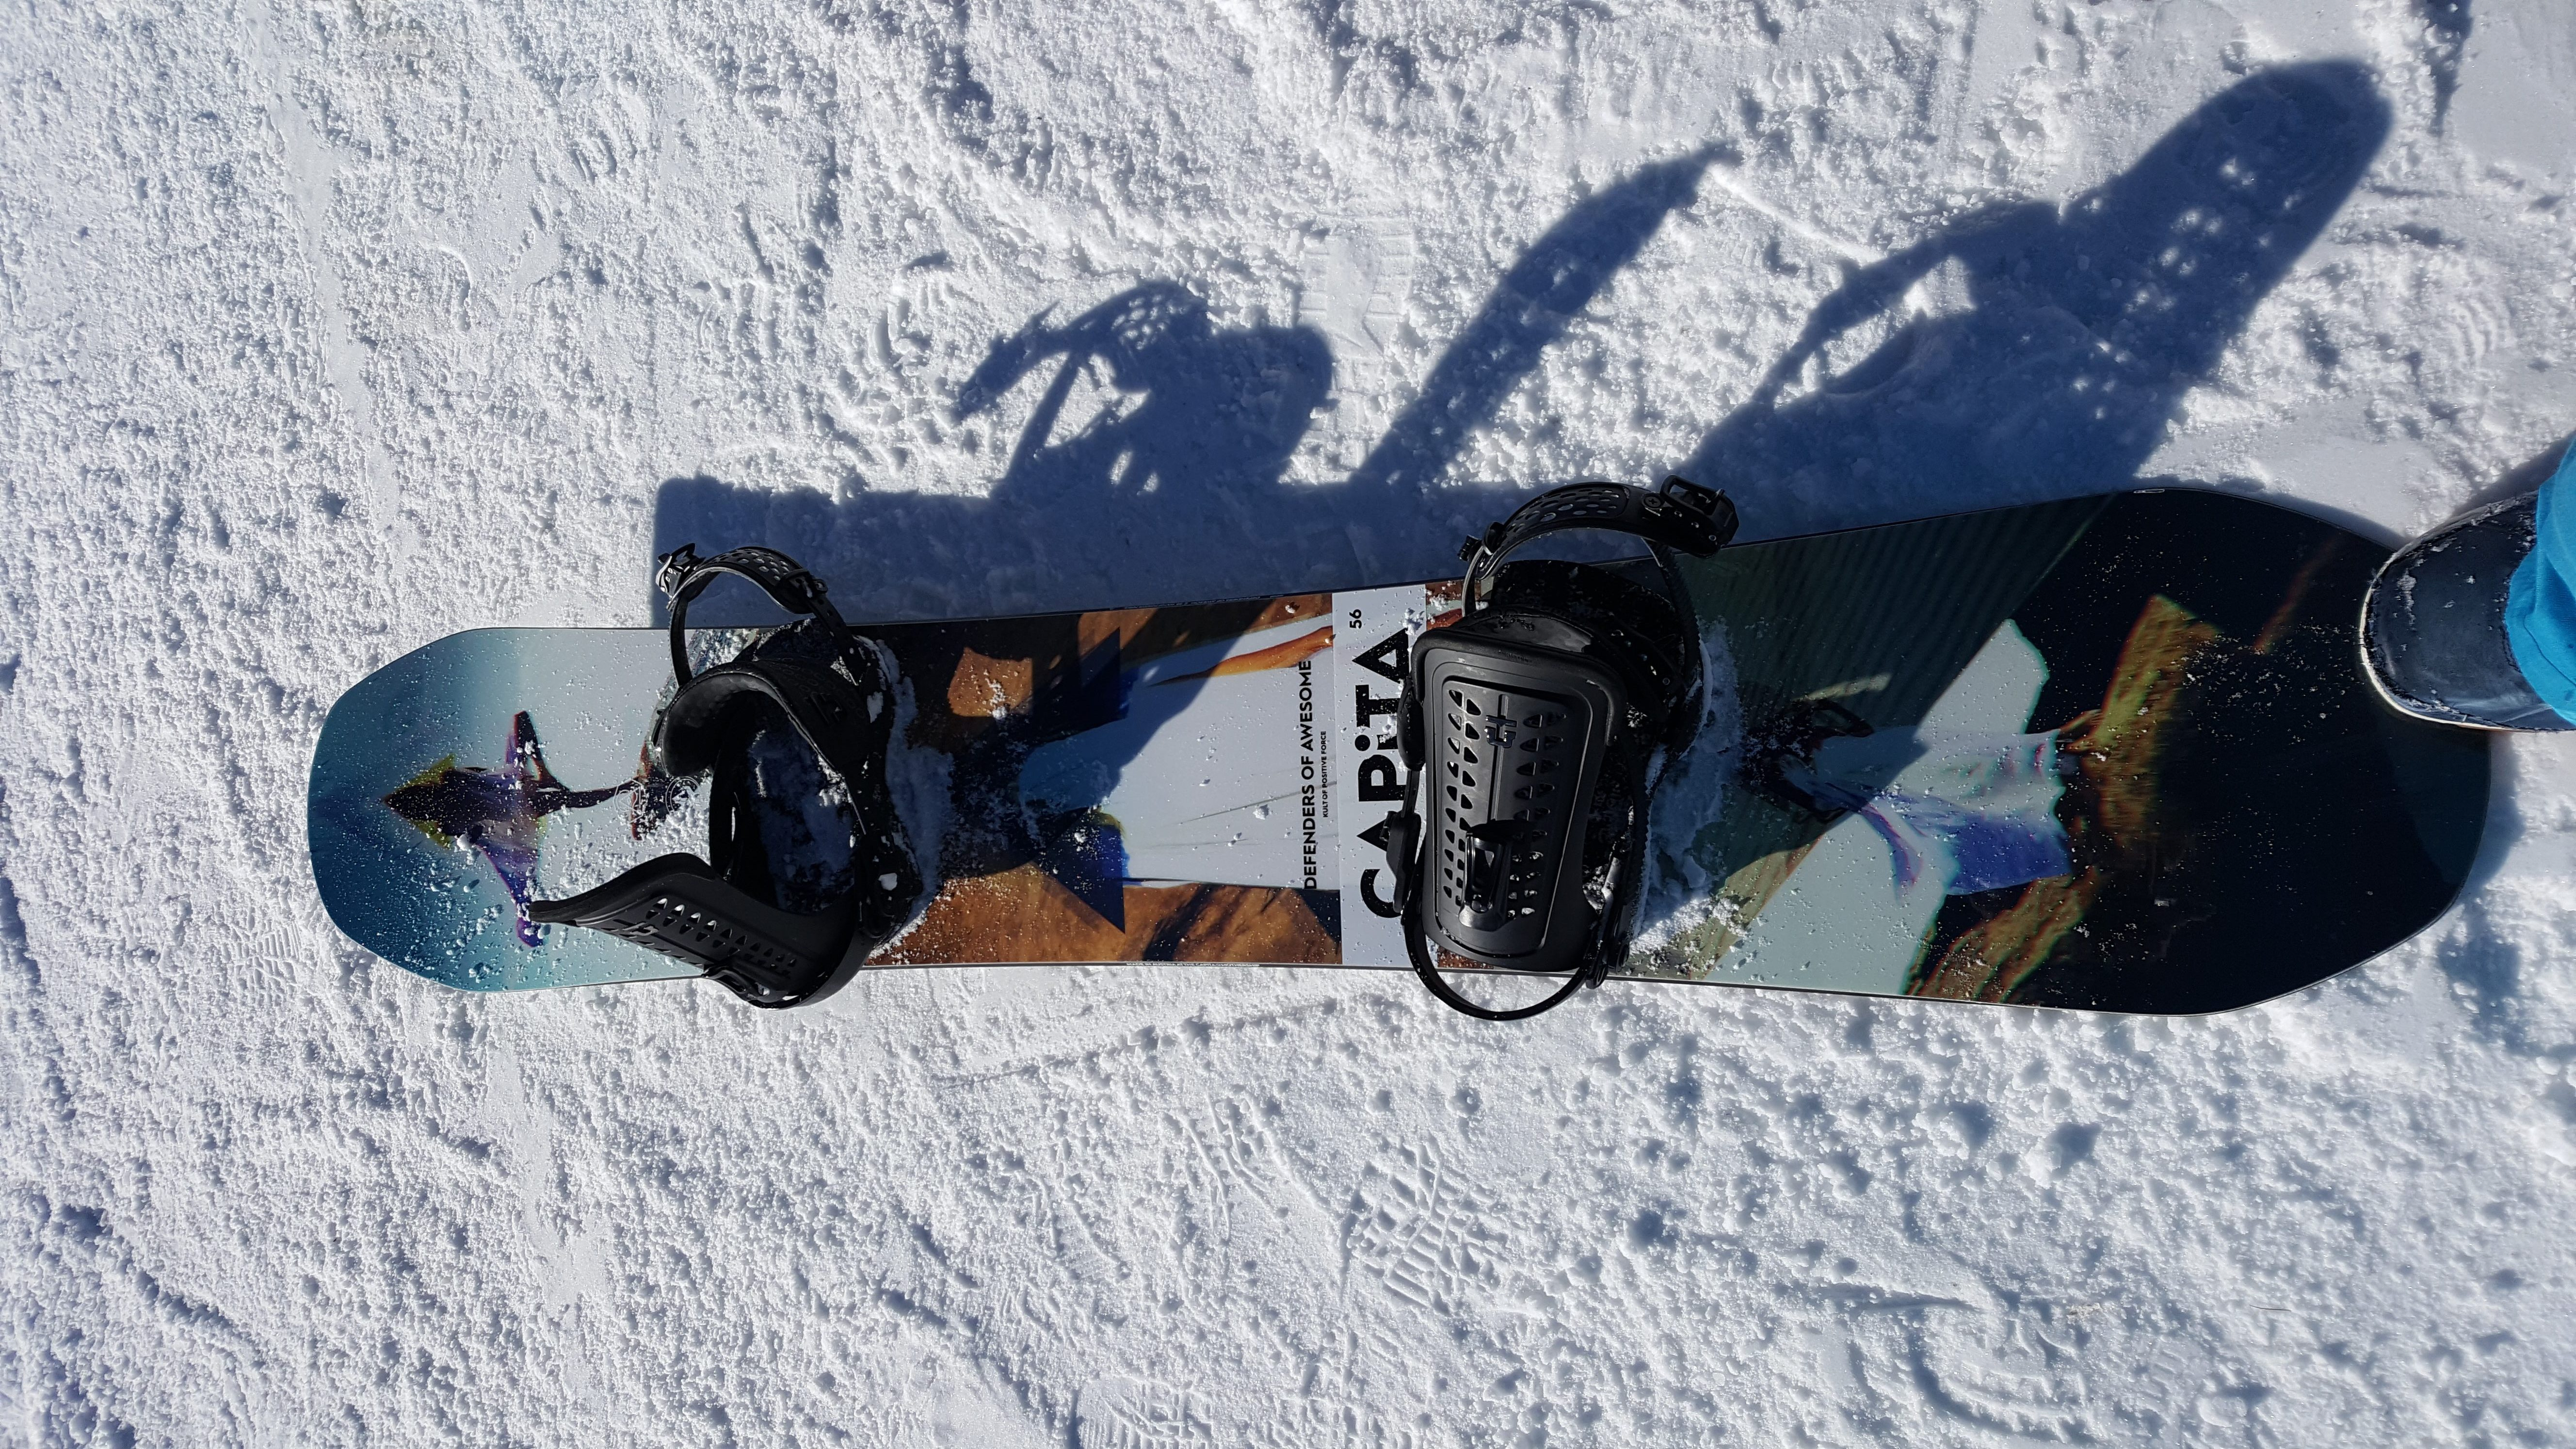 agnarchy com the least significant snowboard blog in the